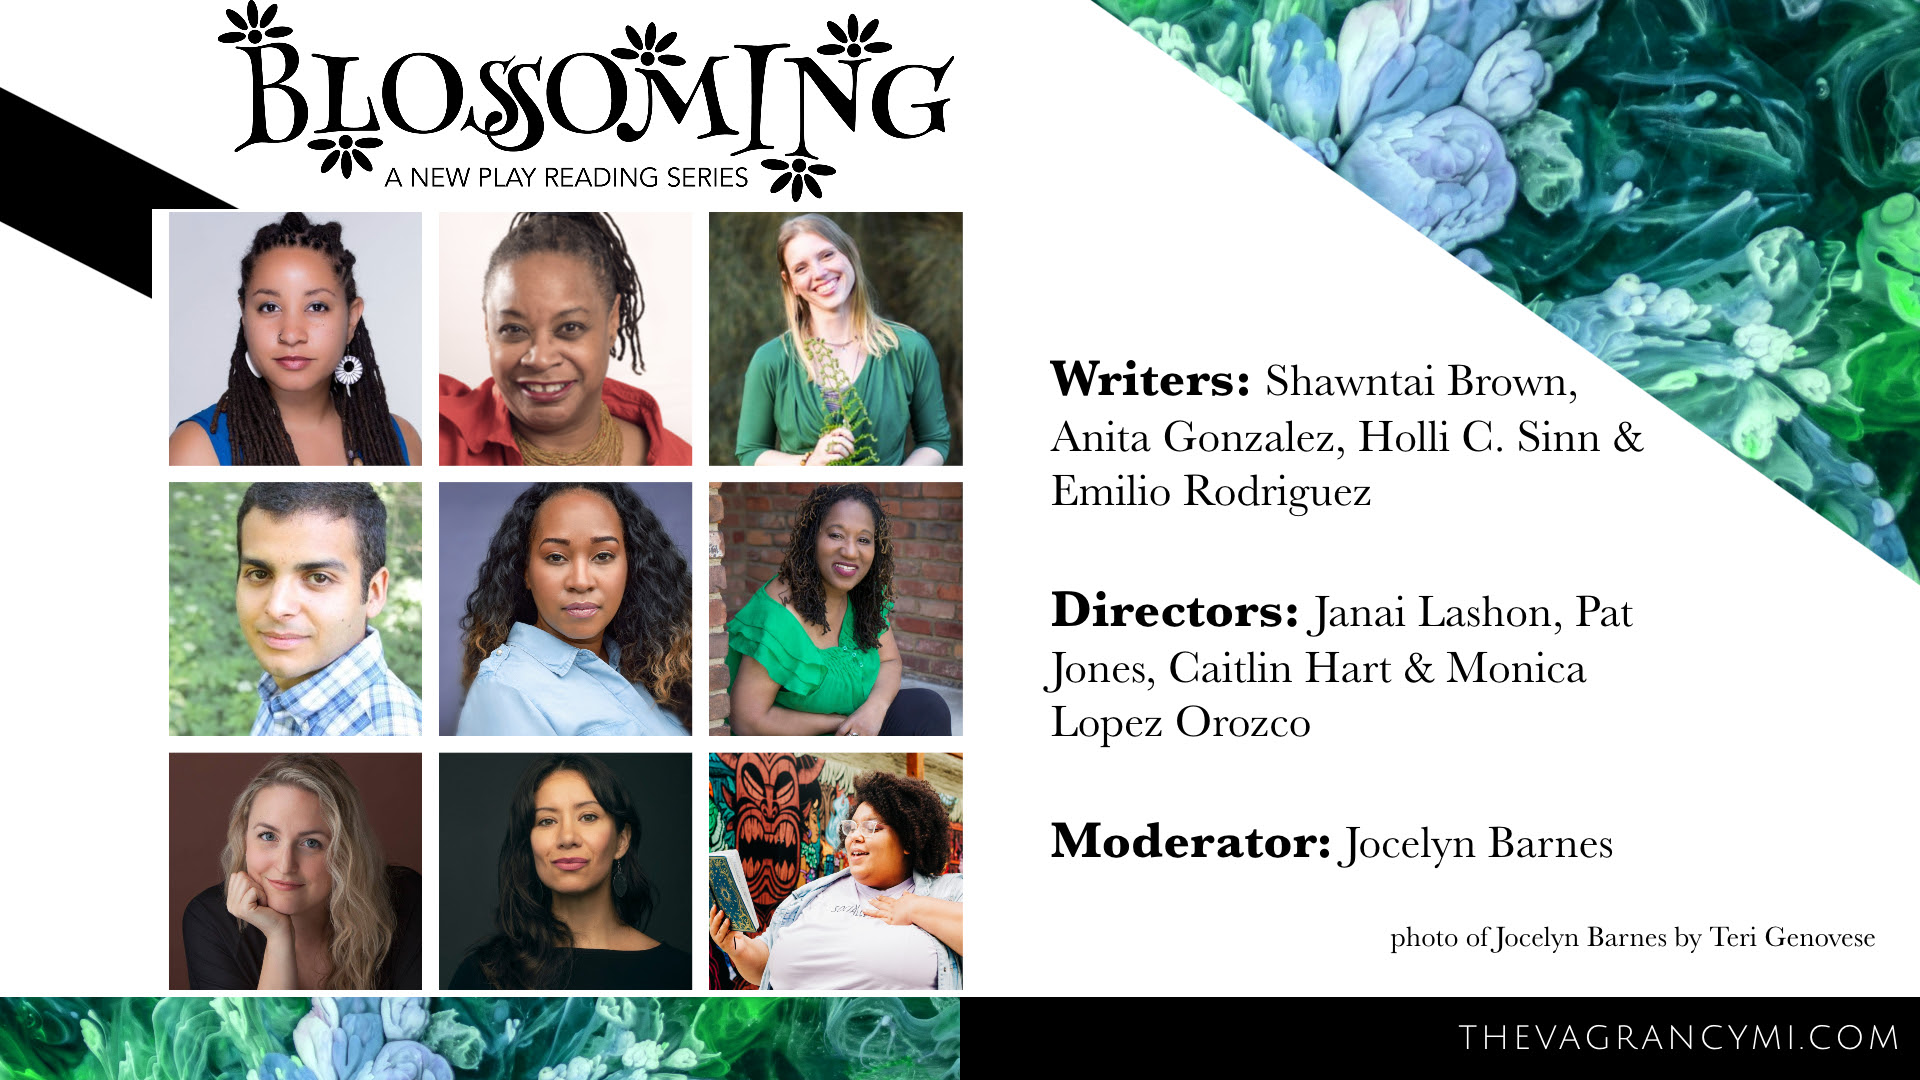 Blossoming Writer promo